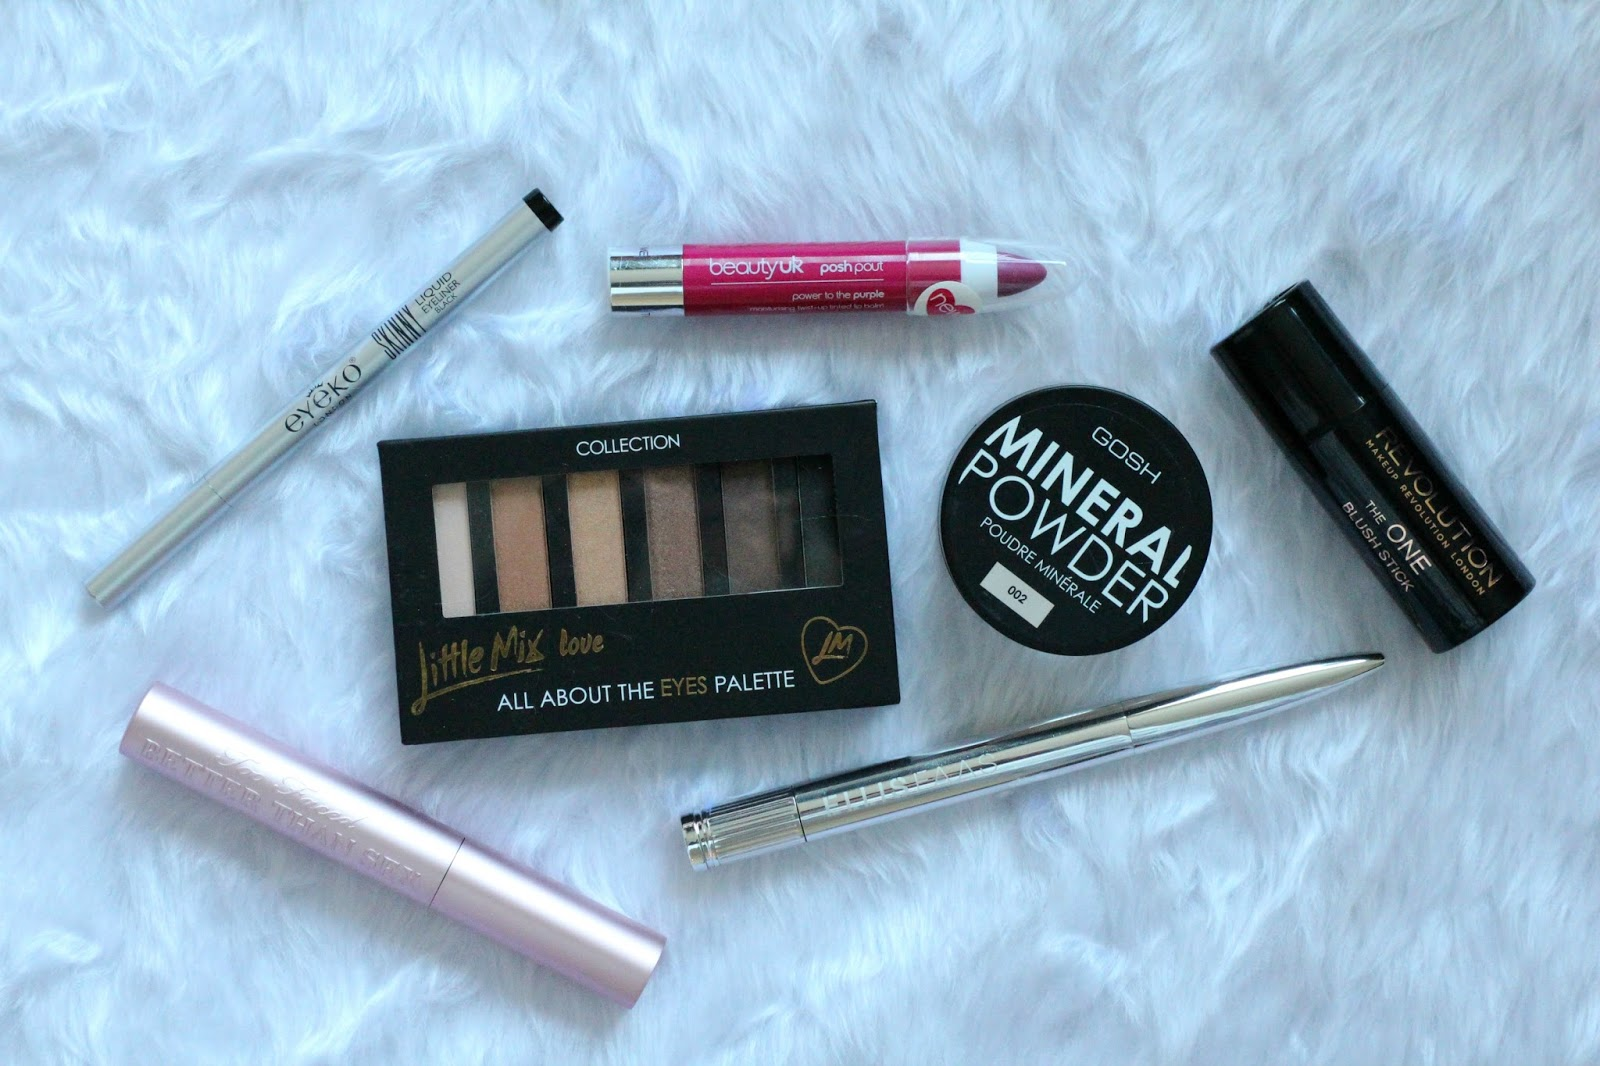 2014 Make-up Favourites Too Faced Eyeko Beauty UK Collection GOSH Makeup Revolution Ellis Faas